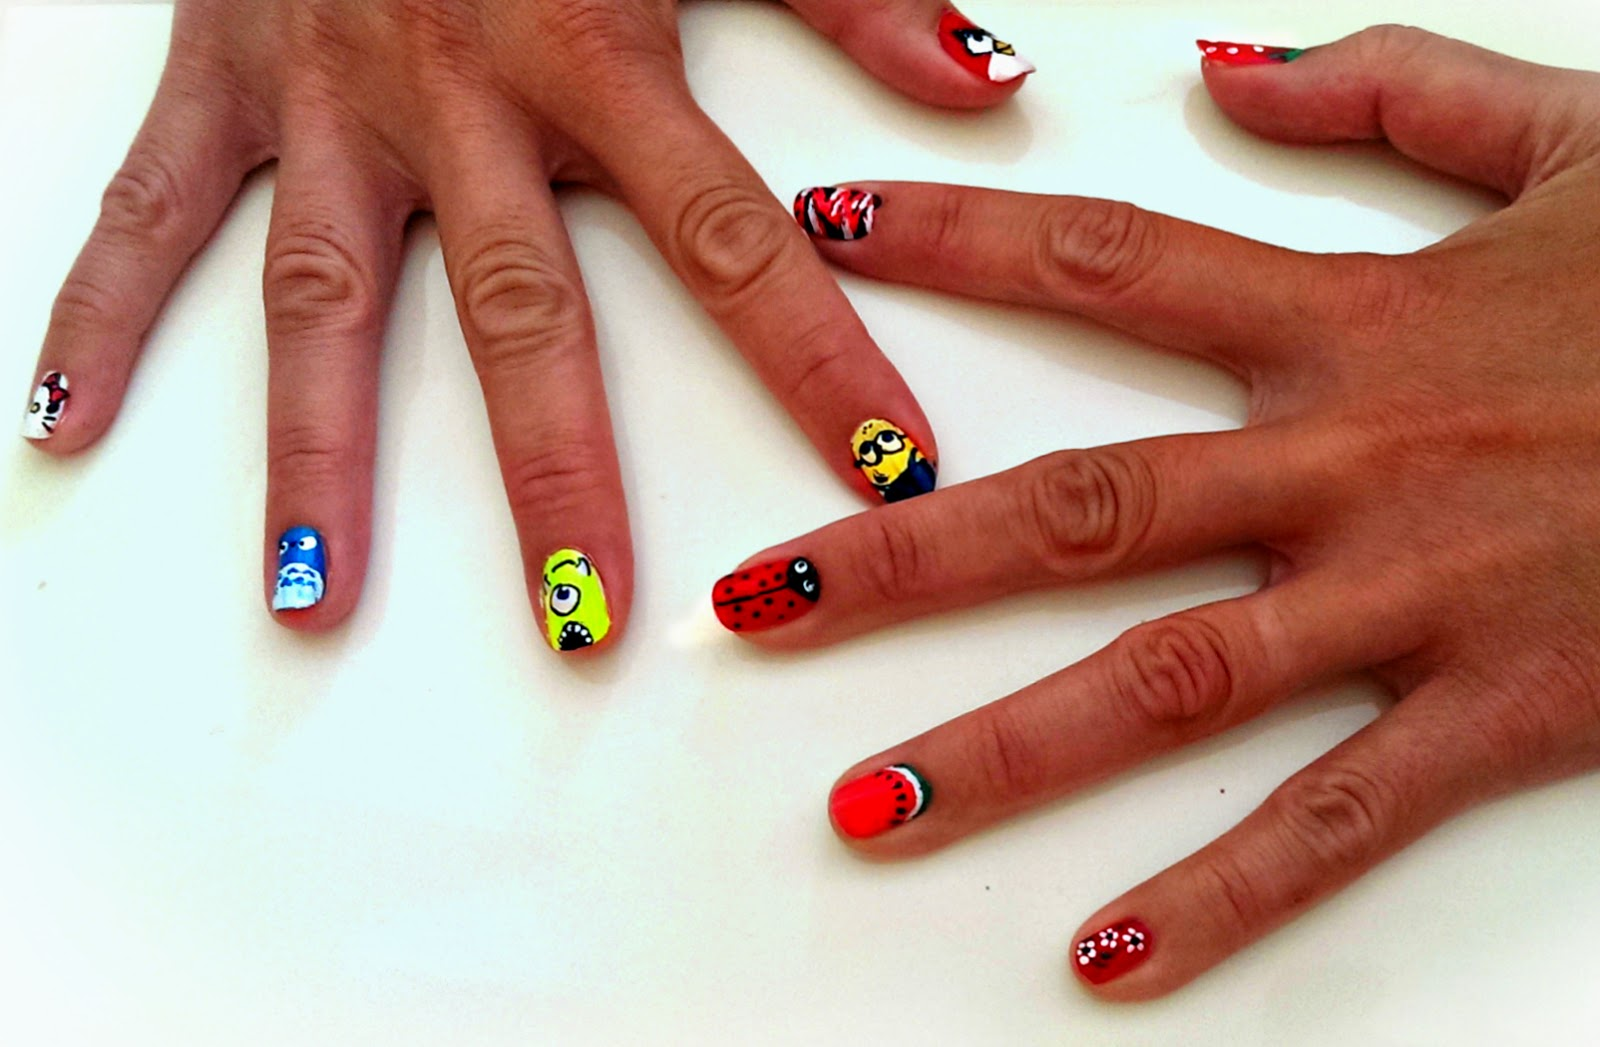 hot designs nail art - Hot Designs Nail Art Ideas